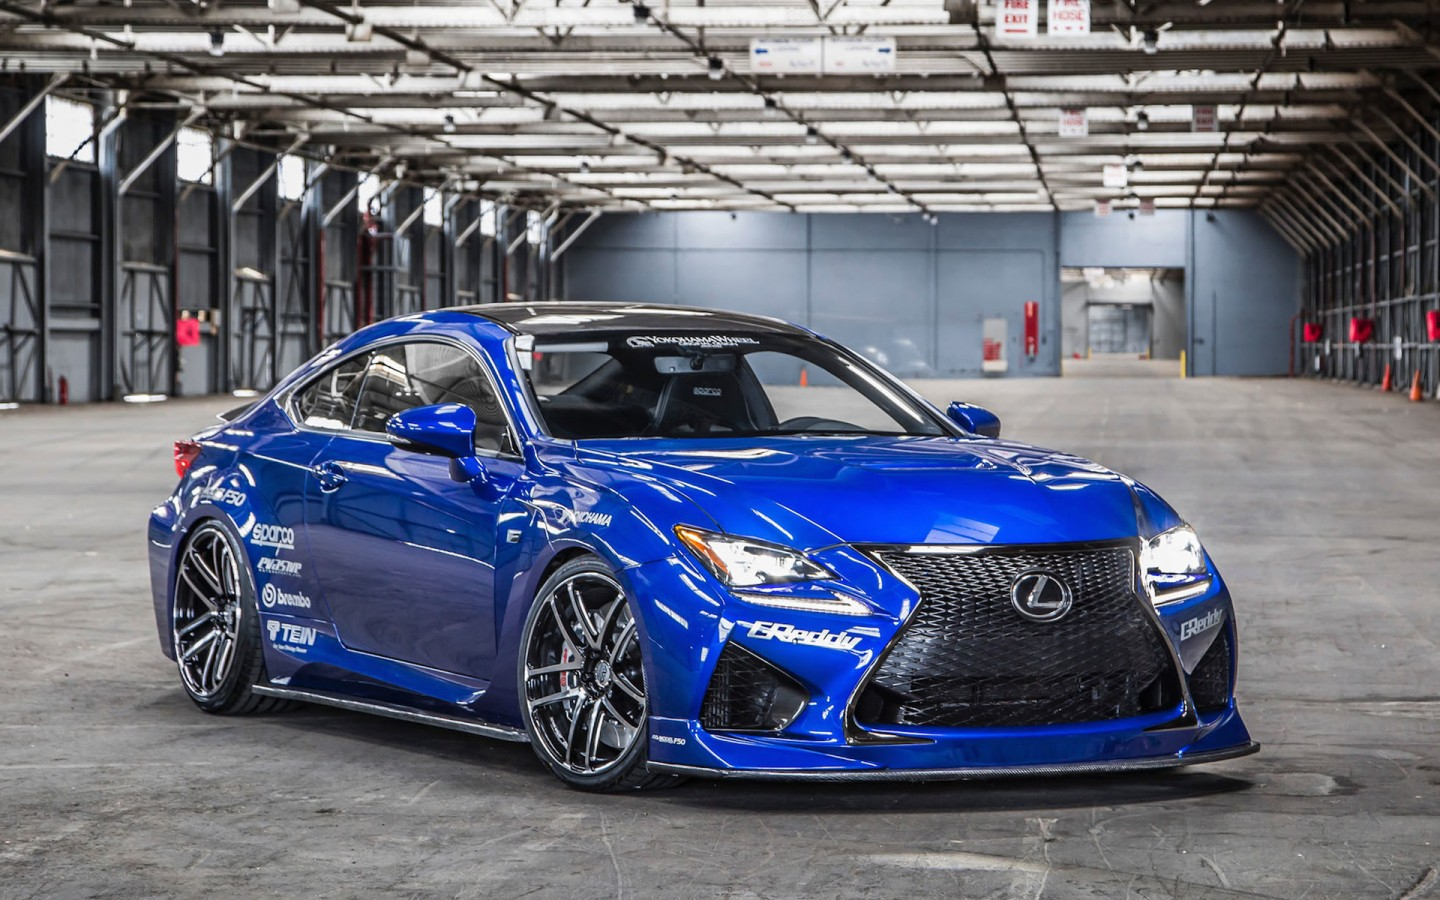 2014 Hd Wallpapers: 2014 Lexus RC F By Gordon Ting Wallpaper